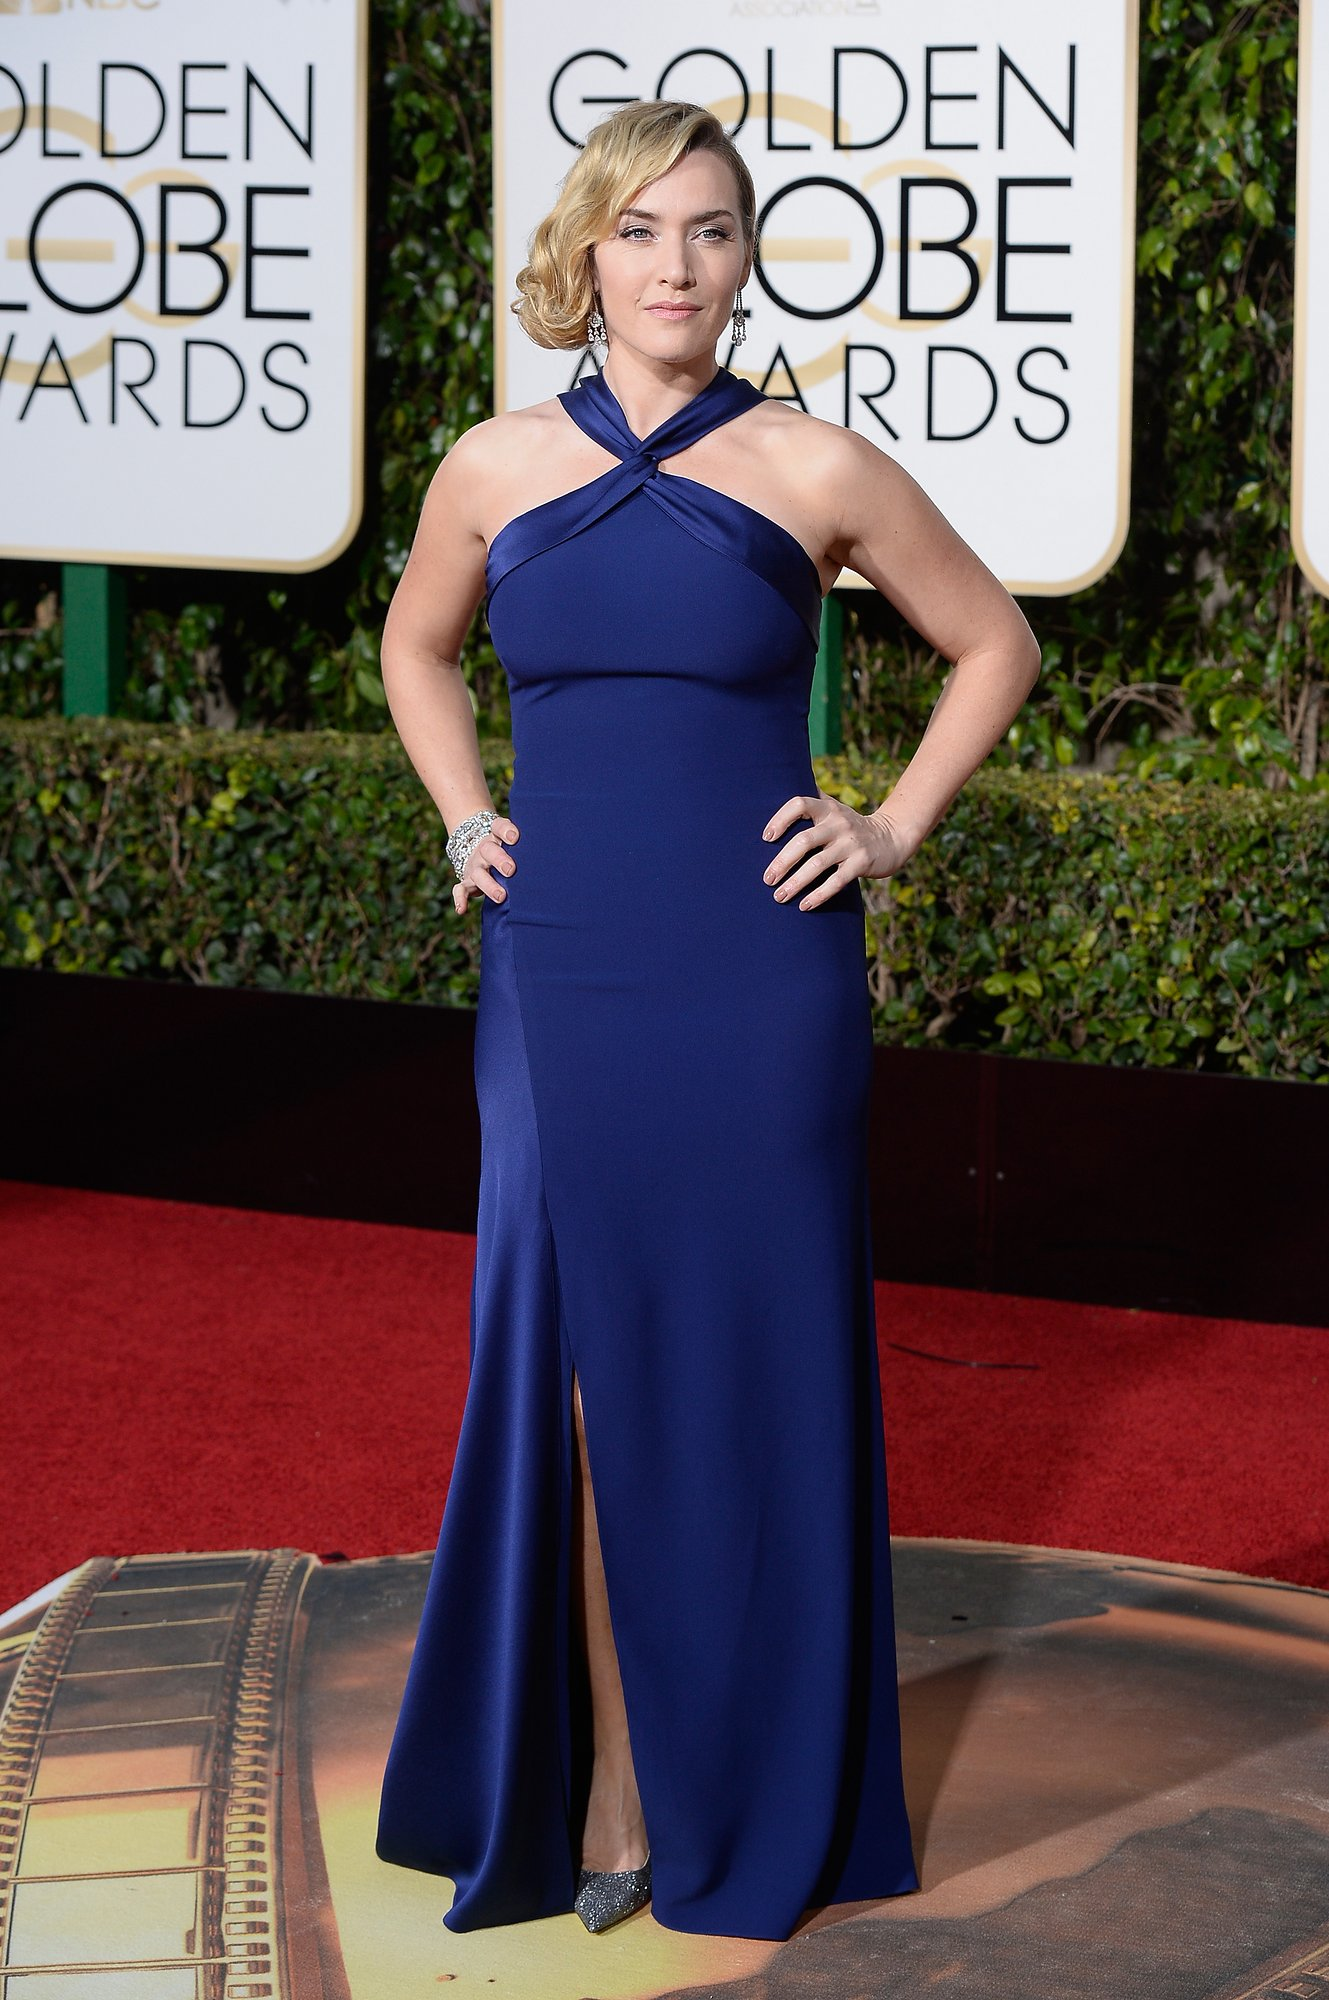 kate-winslet-golden-globes-2016.jpg